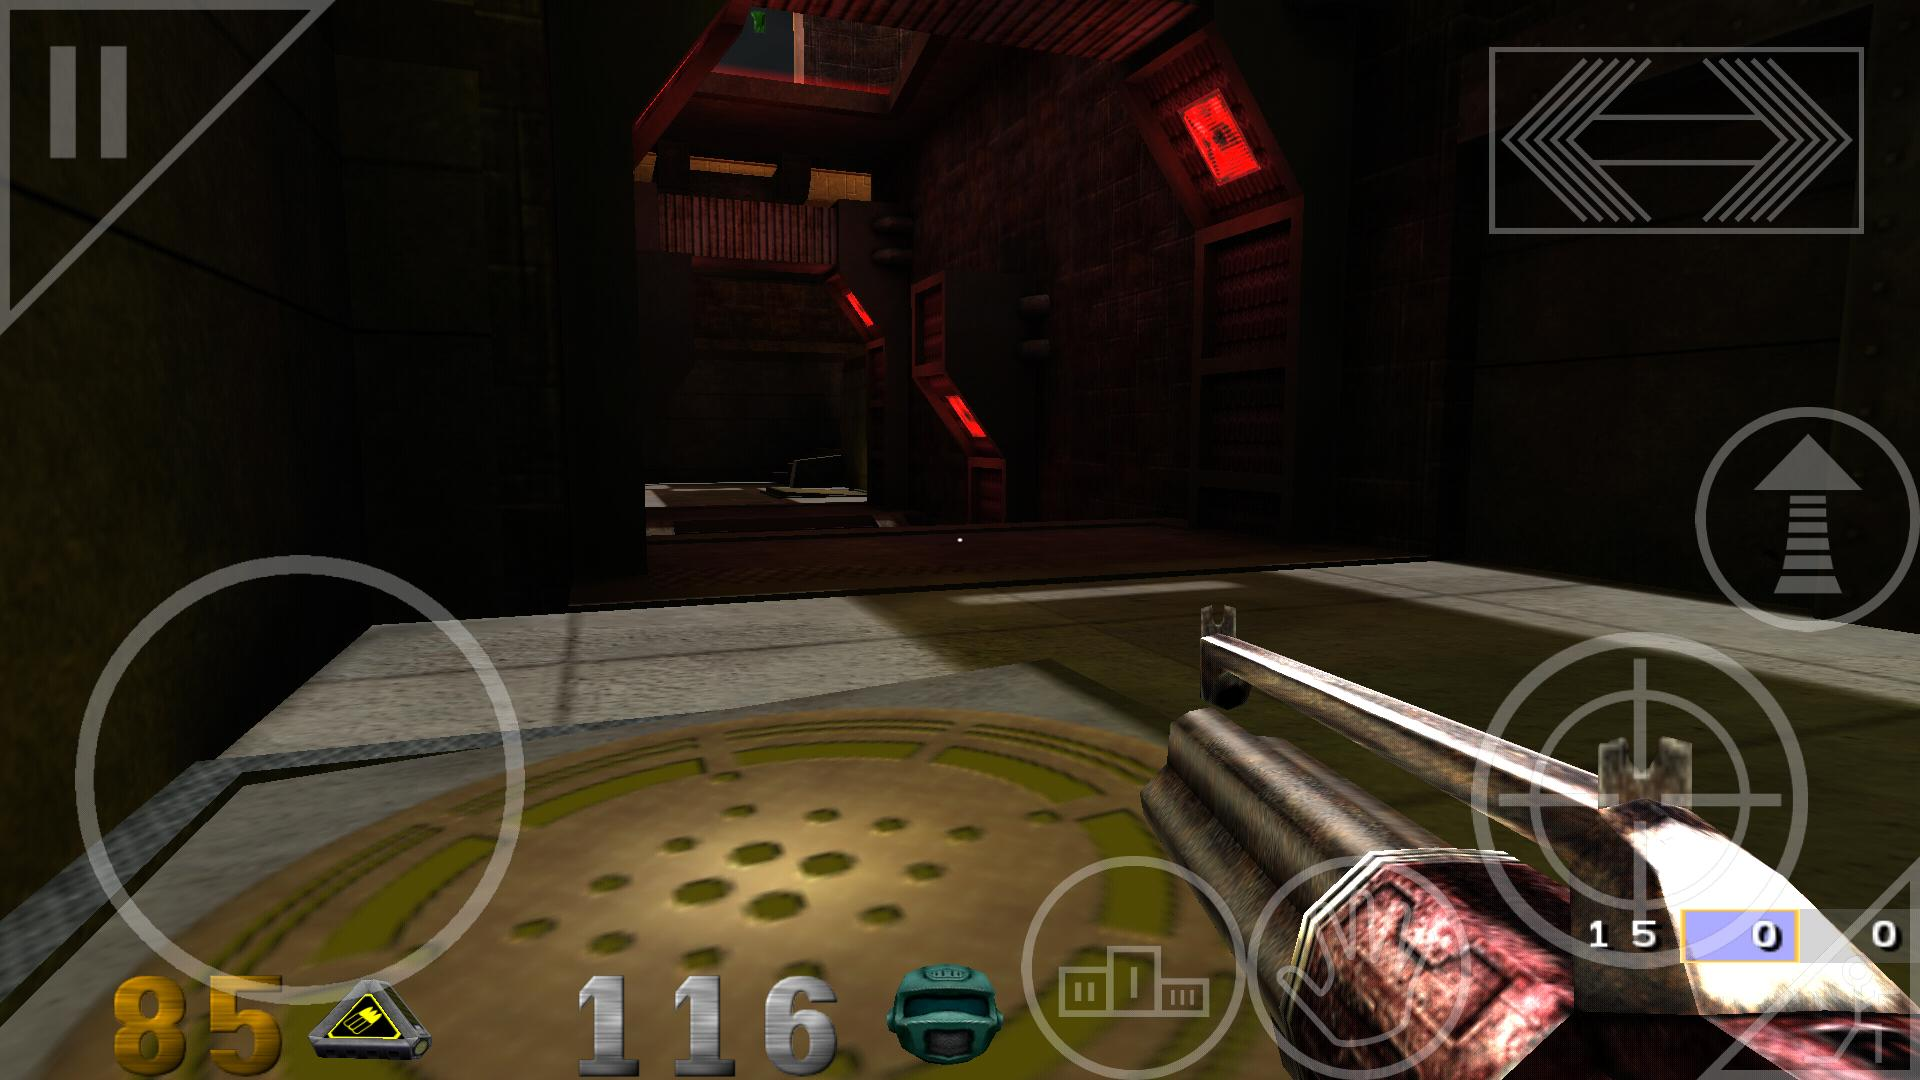 Q3 Arena for Android - APK Download